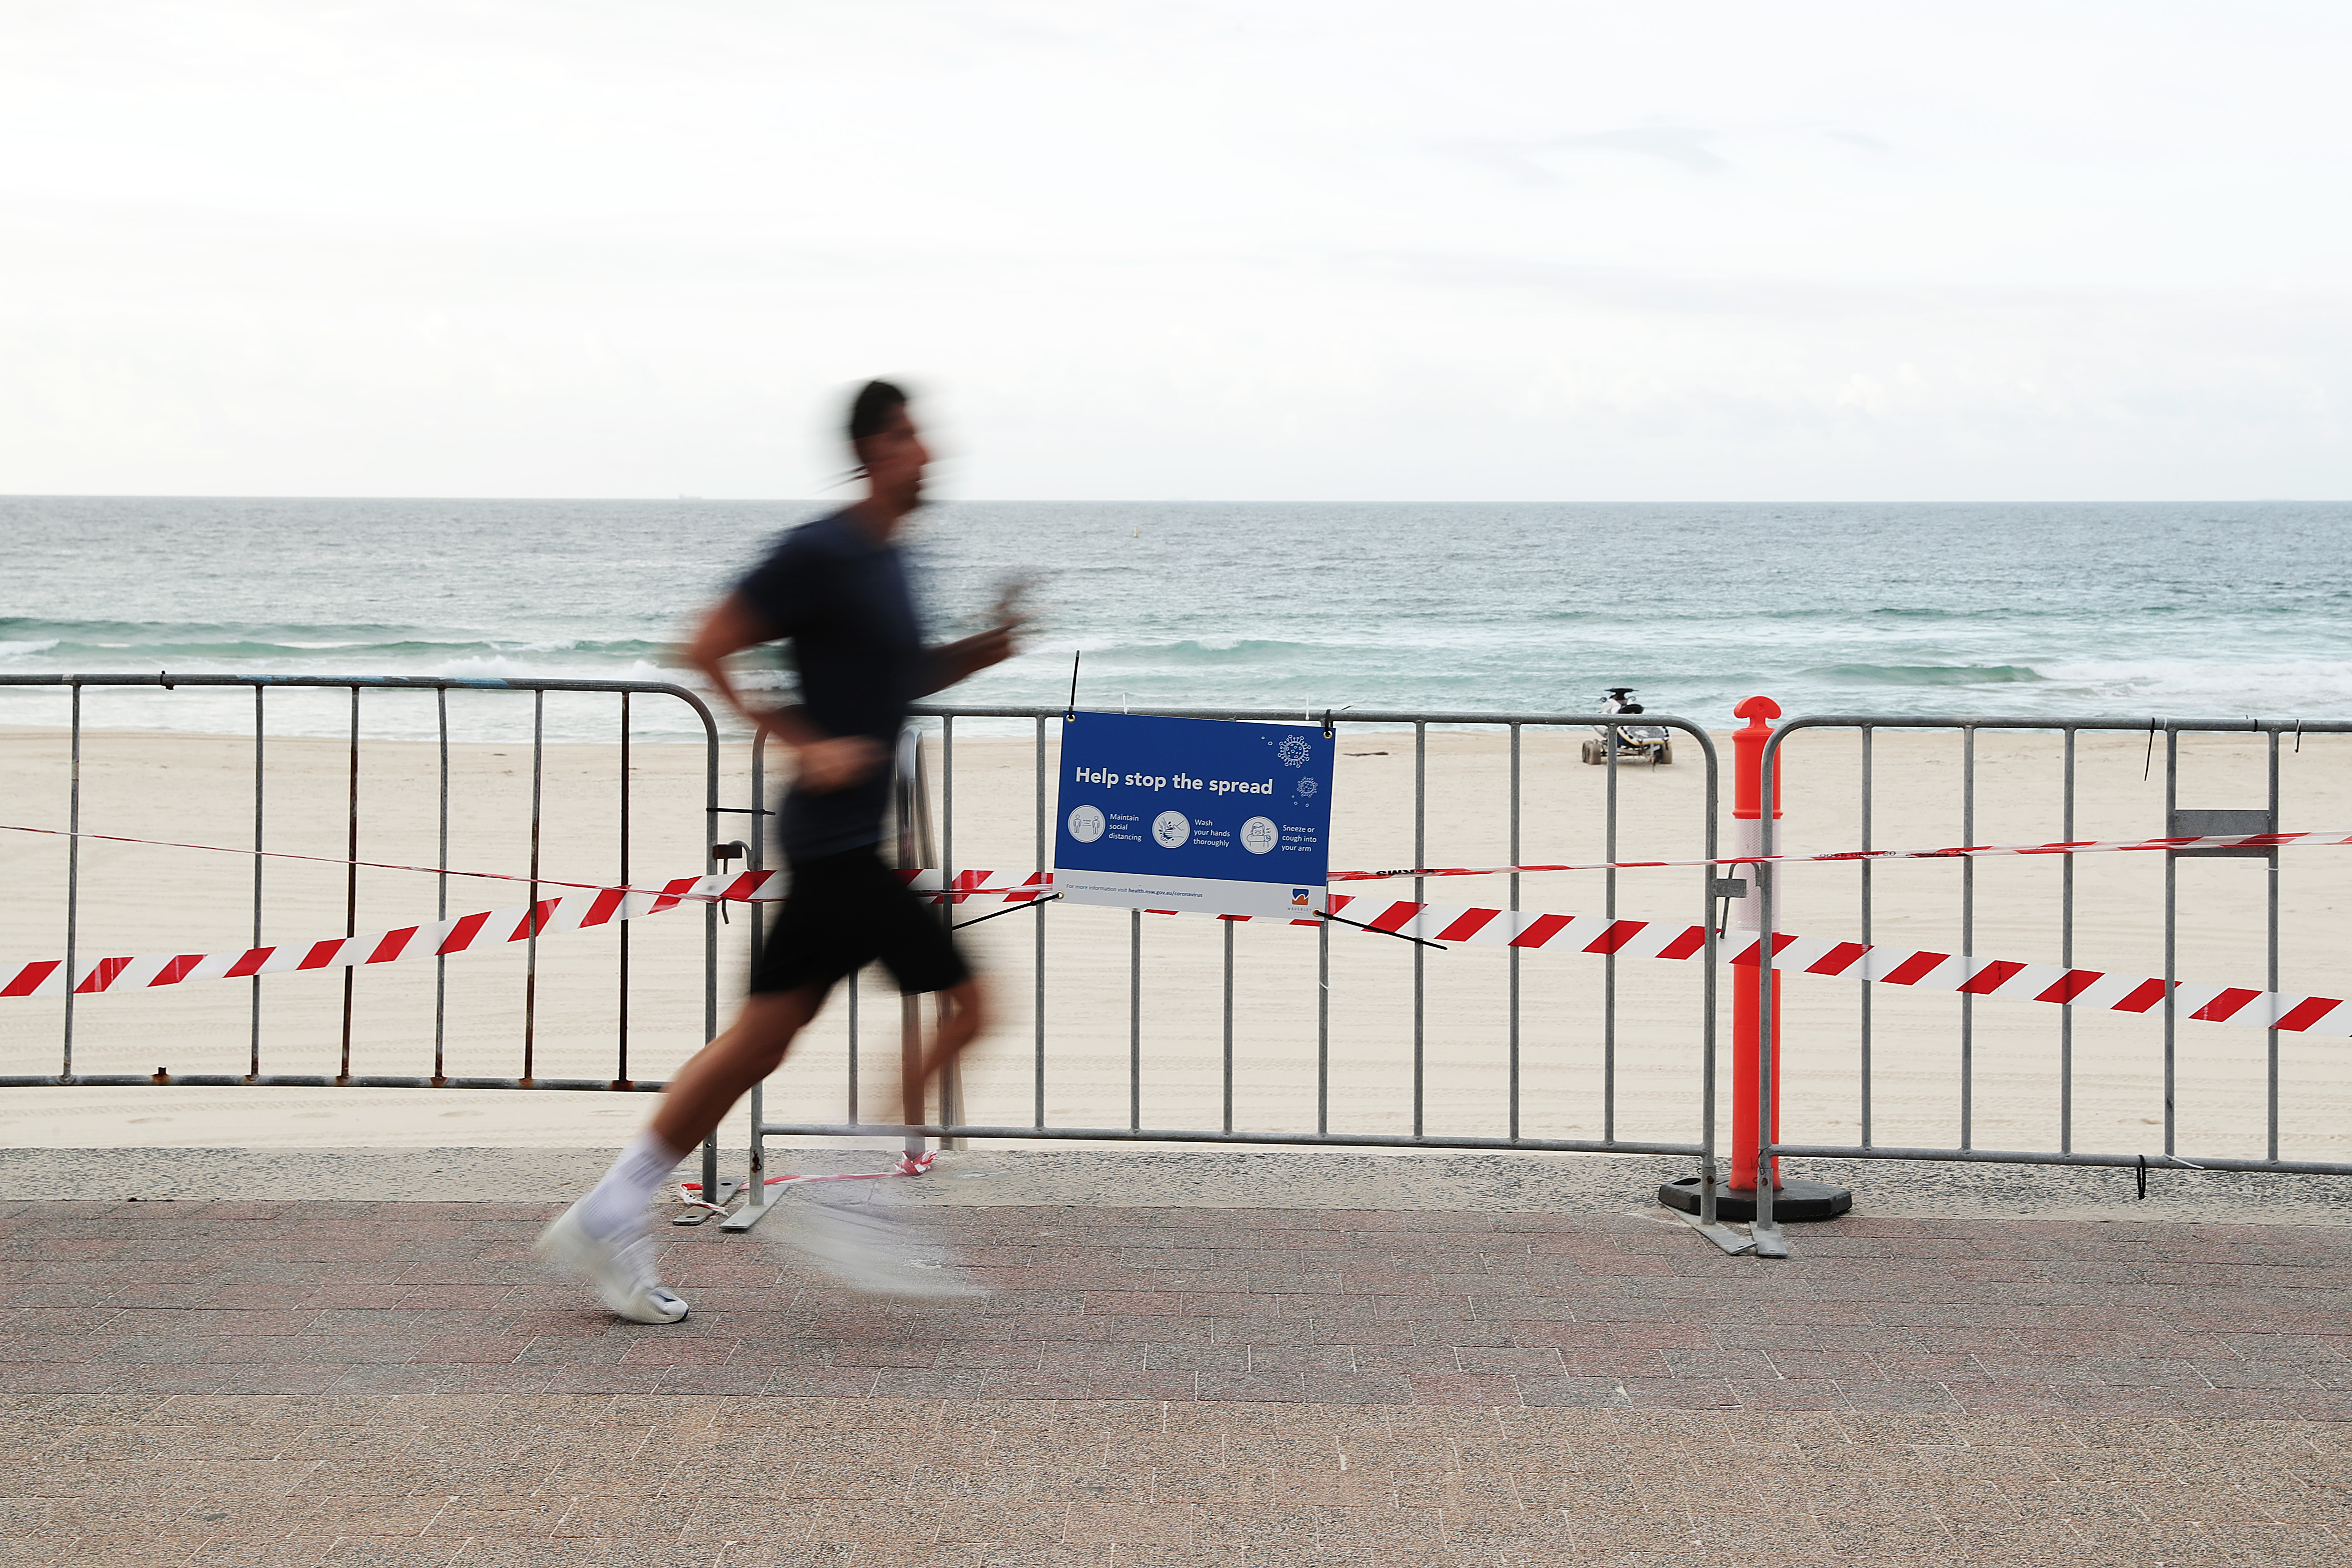 SYDNEY, AUSTRALIA - APRIL 01: A jogger runs along Bondi Beach on April 01, 2020 in Sydney, Australia. The Australian government has introduced further restrictions on movement and gatherings in response to the ongoing COVID-19 pandemic. Public gatherings are now limited to two people, while Australians are being urged to stay home unless absolutely necessary. New South Wales and Victoria have also enacted additional measures to allow police the power to fine people who breach the two-person outdoor gathering limit or leave their homes without a reasonable excuse. Queensland, Western Australia, South Australia, Tasmania and the Northern Territory have all closed their borders to non-essential travellers and international arrivals into Australia are being sent to mandatory quarantine in hotels for 14 days. (Photo by Mark Metcalfe/Getty Images)